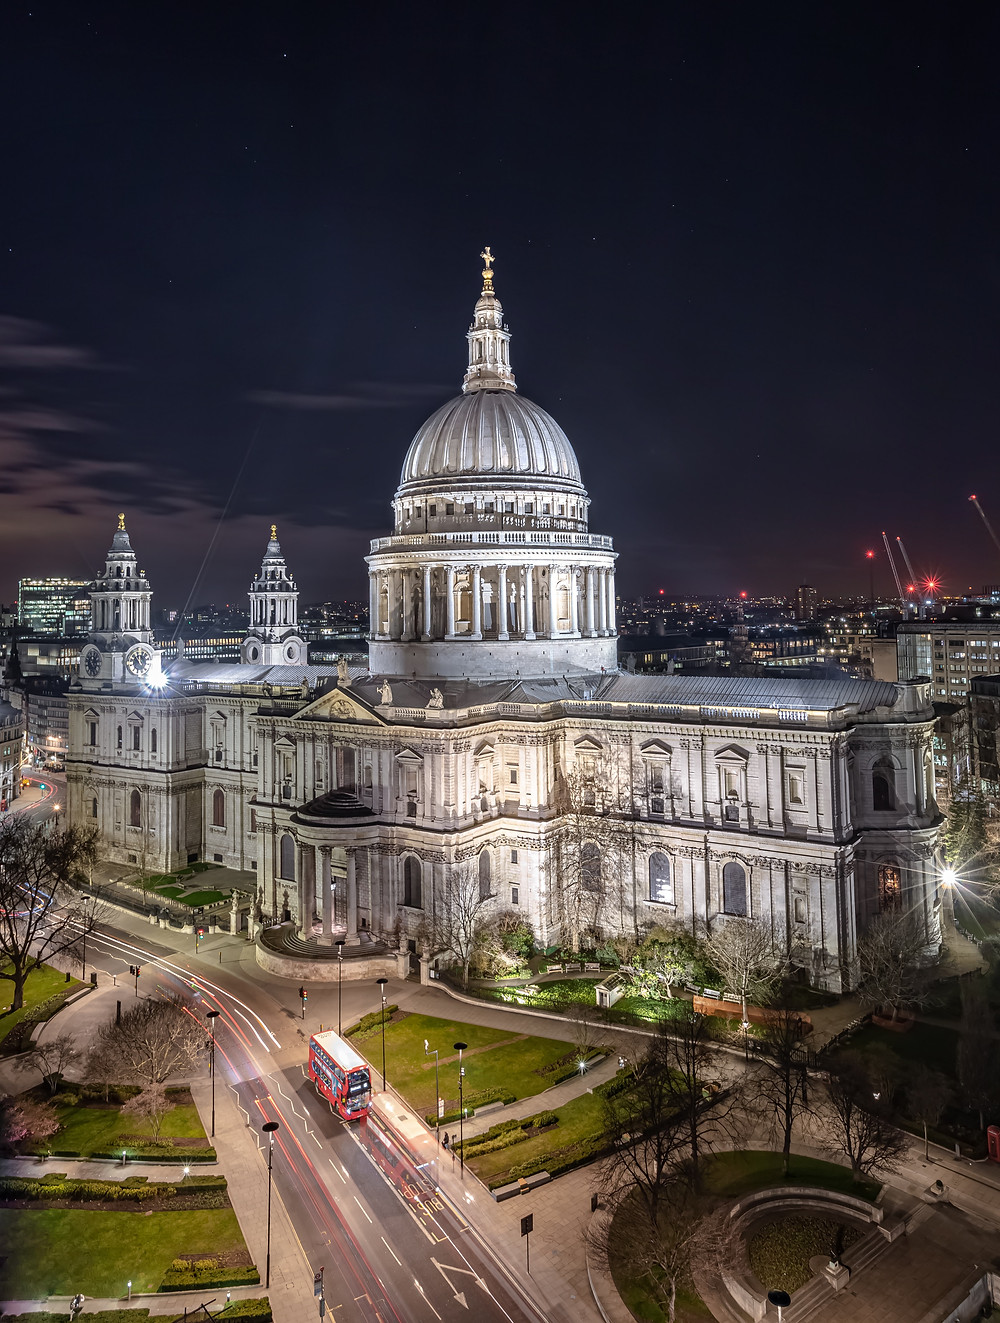 Night photo of Saint Paul's Cathedral, London